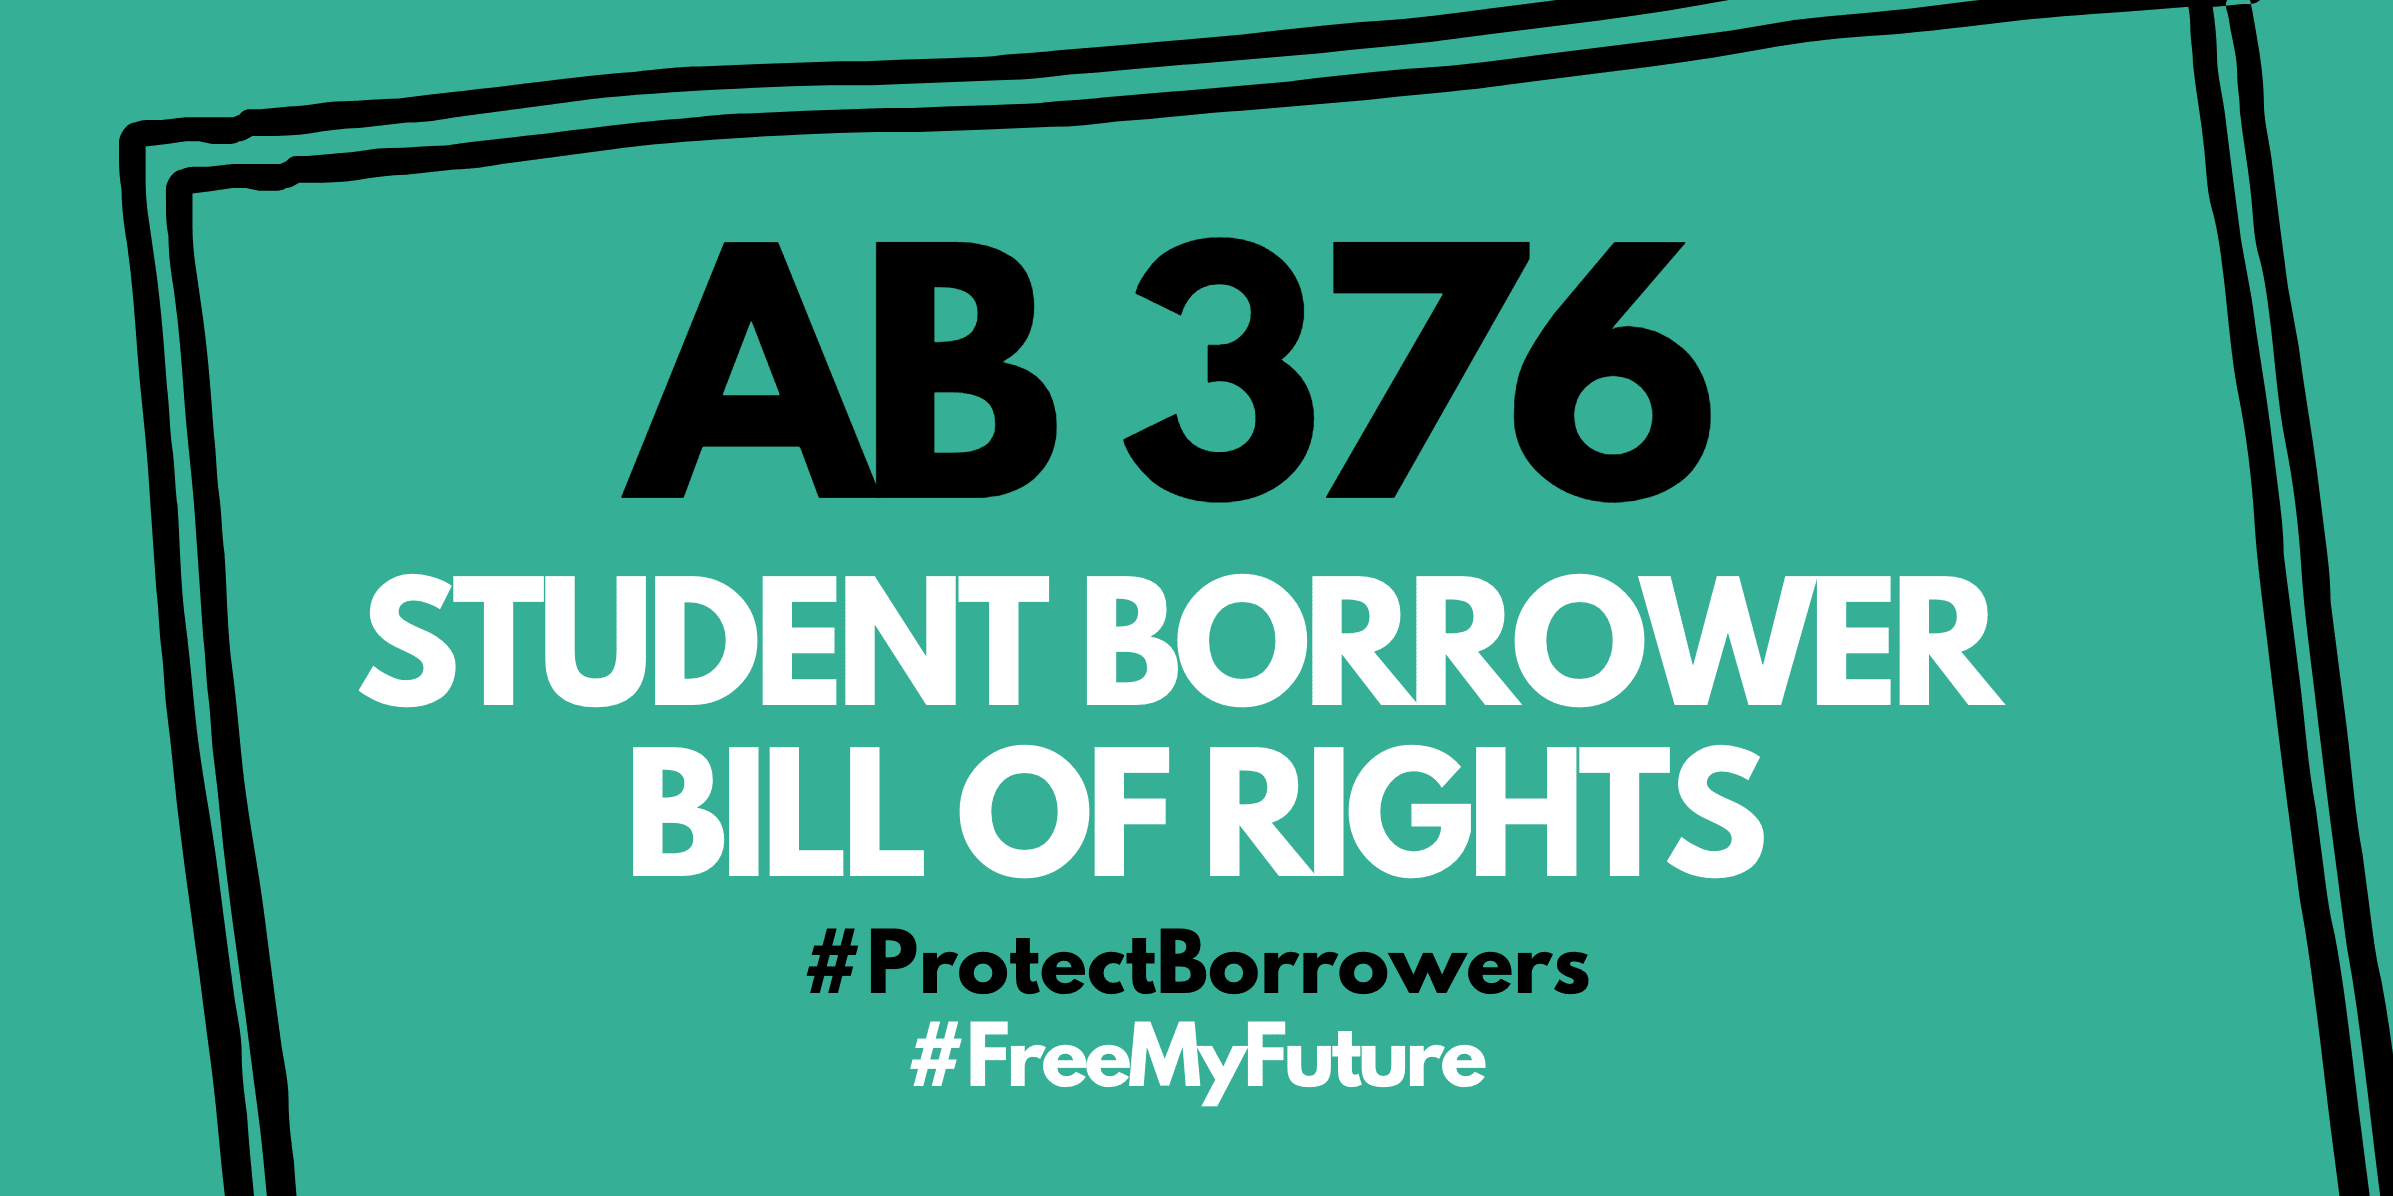 AB 376 Student Borrower Bill of Rights